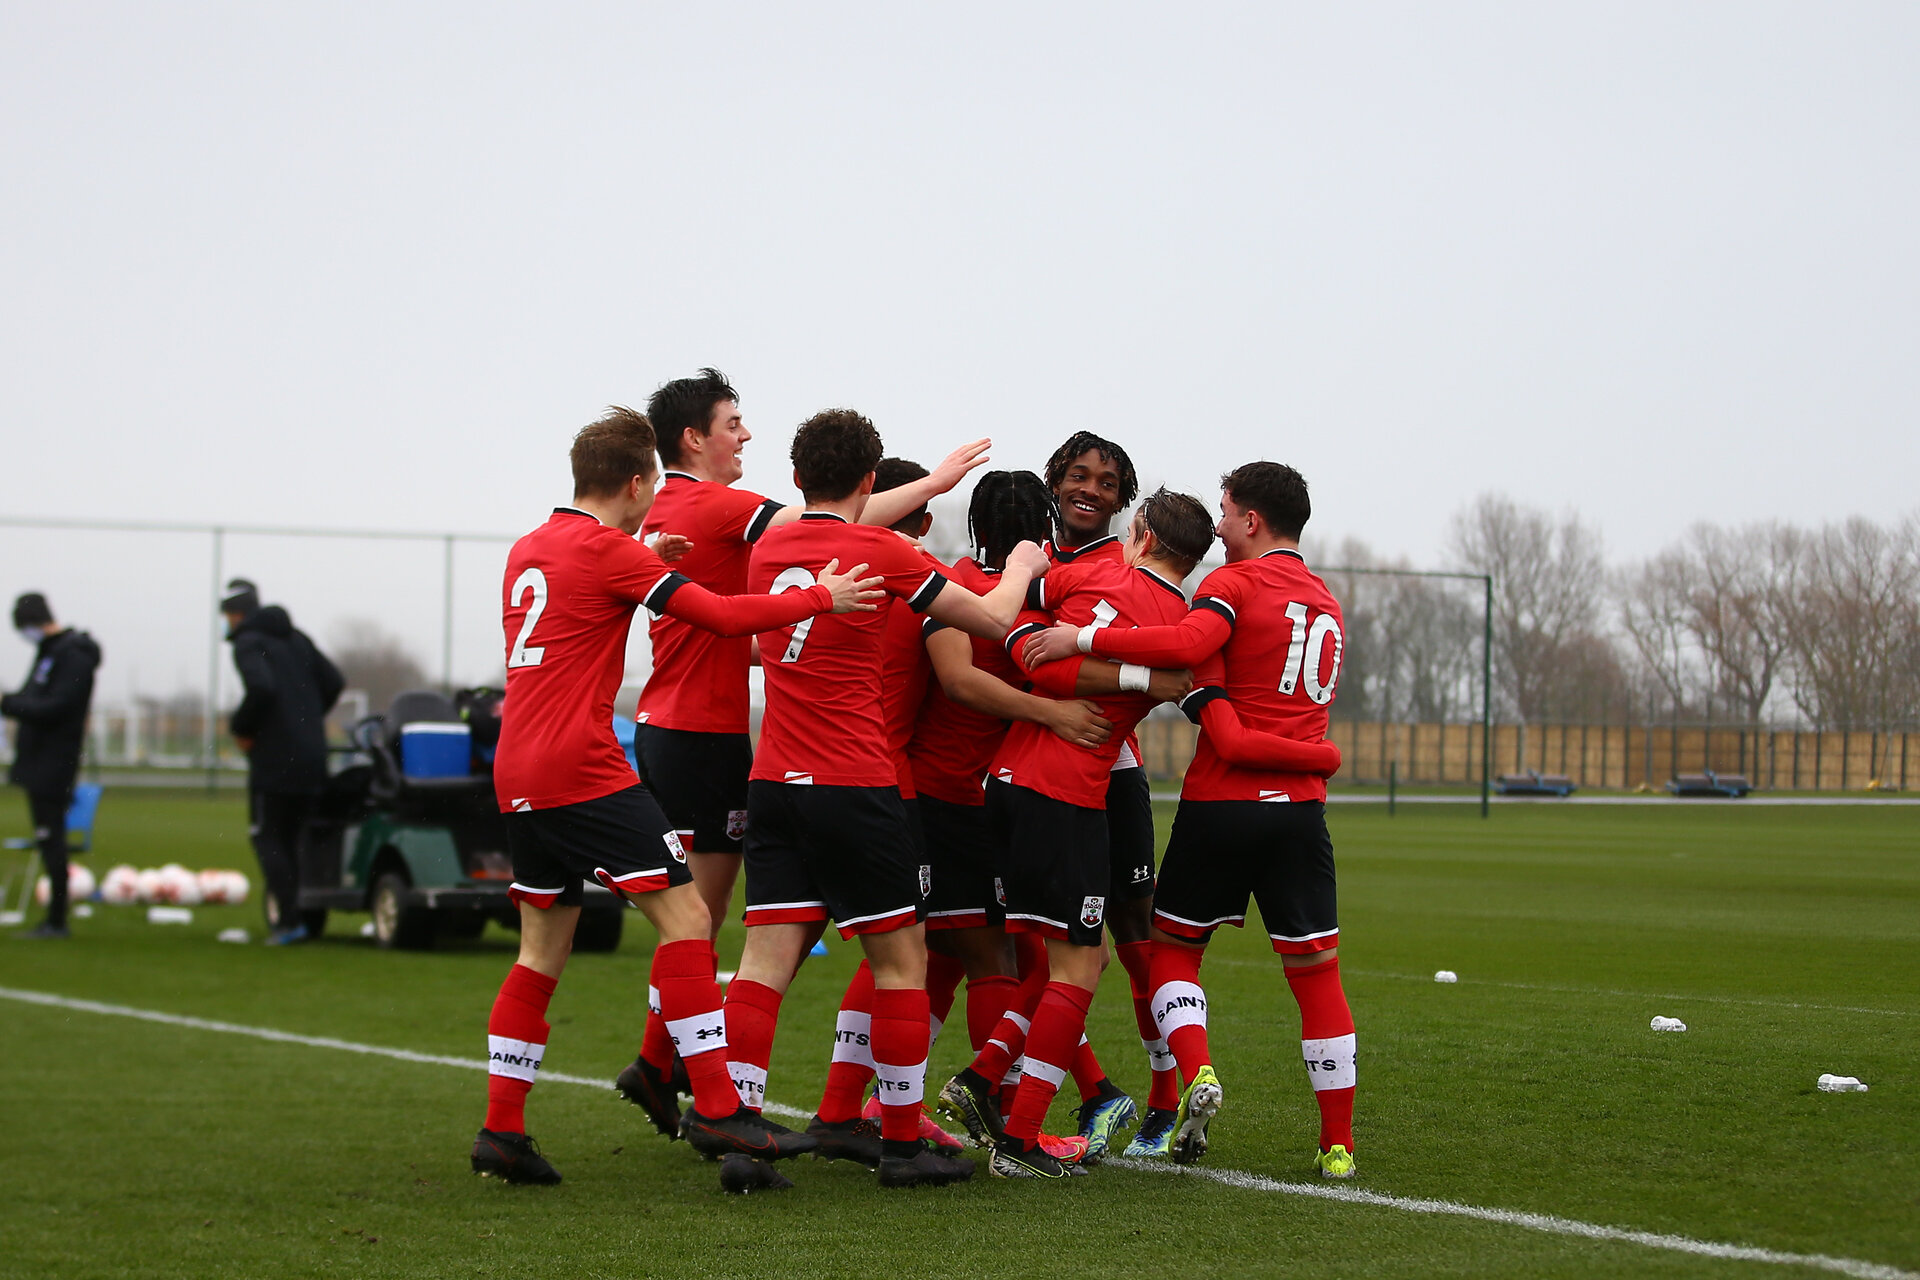 BRIGHTON, ENGLAND - FEBRUARY 16: Diamond Edwards of Southampton celebrates scoring with team mates during the Premier League U18s match between Brighton & Hove Albion and Southampton U18 at The Amex Elite Football Performance Center on February 16, 2021 in Brighton, England. (Photo by Isabelle Field/Southamtpon FC)